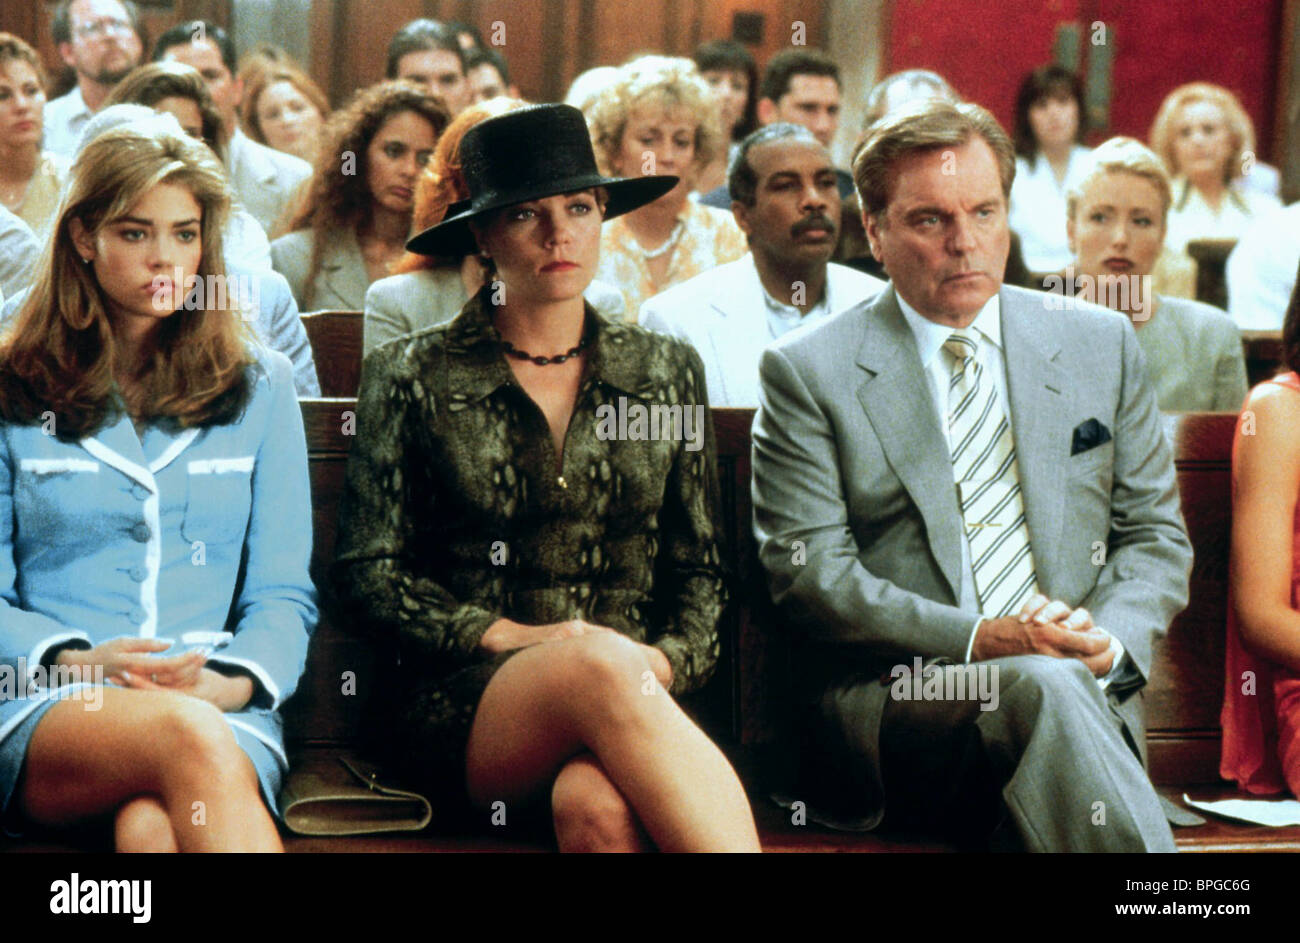 DENISE RICHARDS THERESA RUSSELL ROBERT WAGNER WILD THINGS (1998) - Stock Image